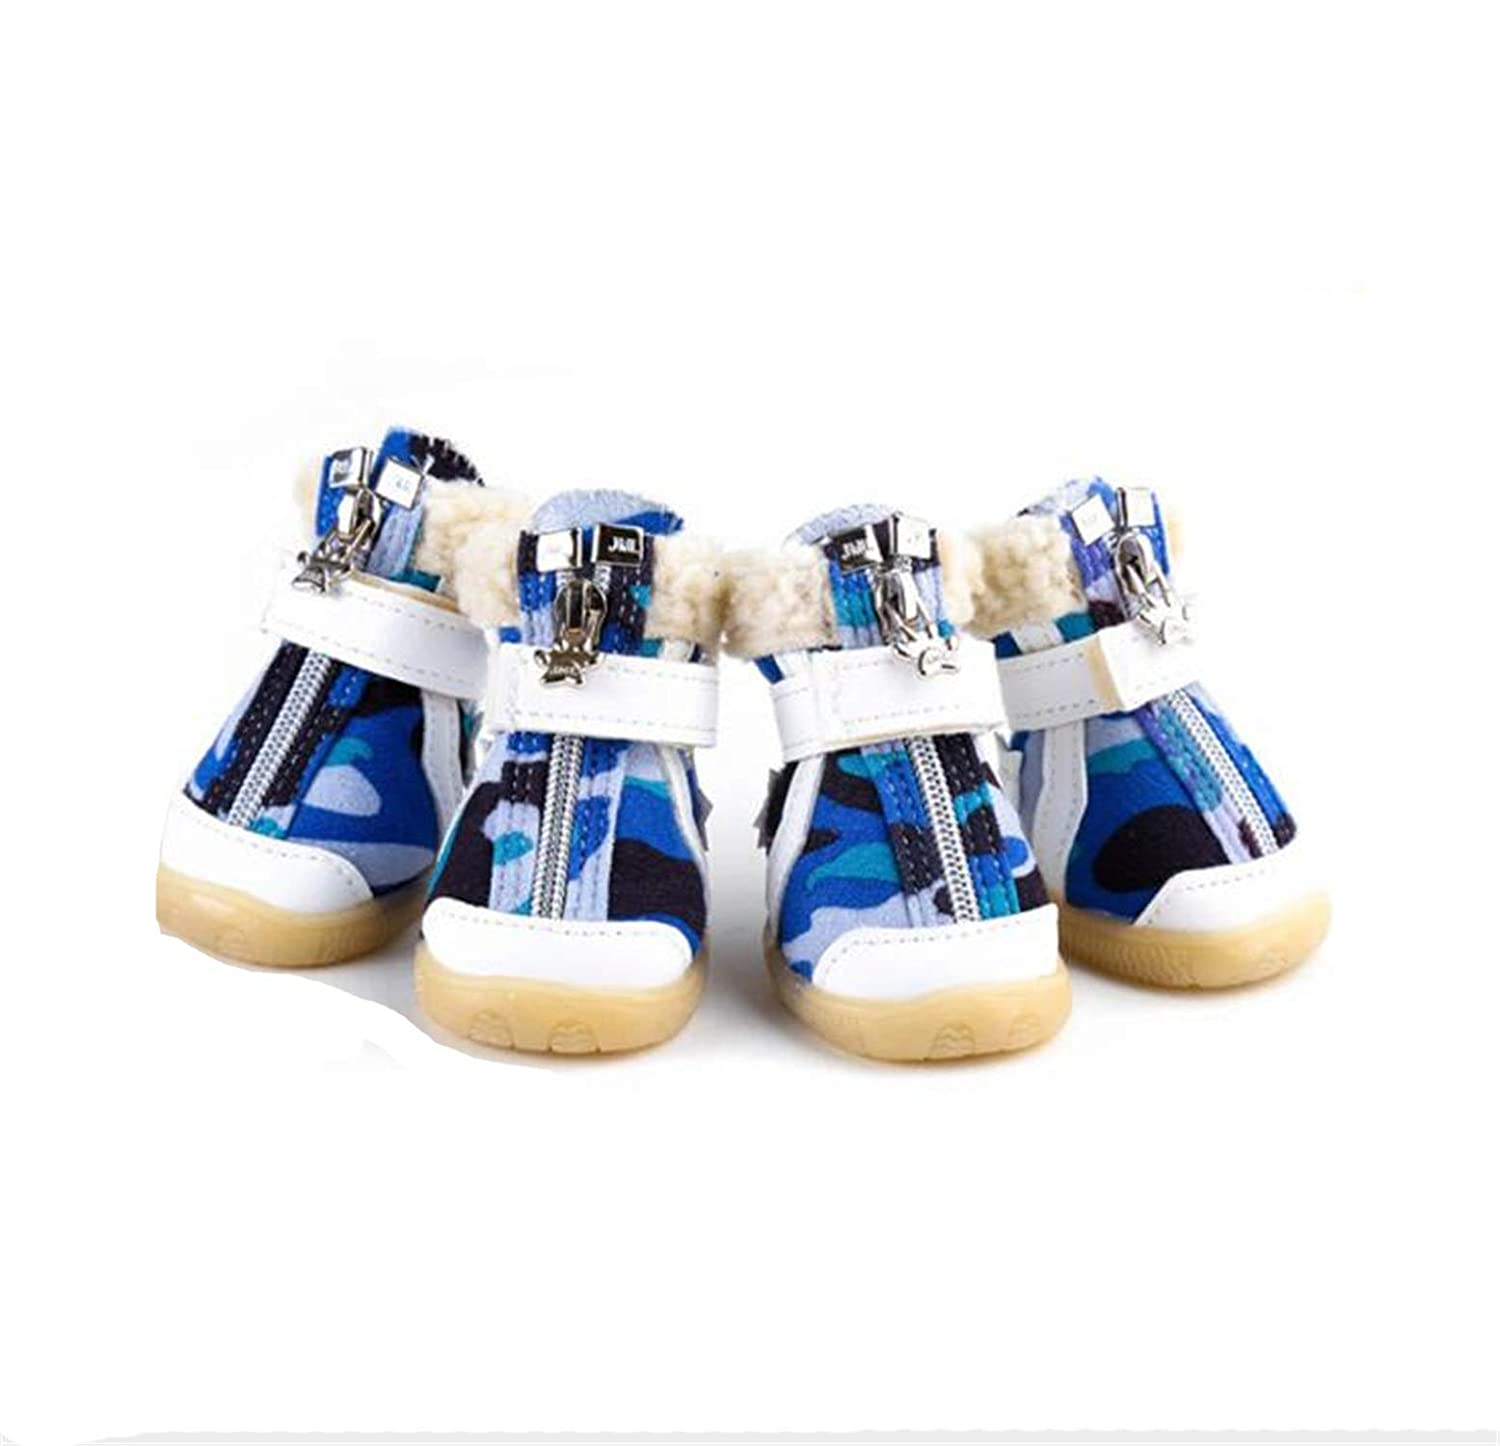 B 4 B 4 Dog shoes,Snow Boots Autumn and Winter Puppy Poodle Bichon Frise Thick Plush Star Decoration Warm and Comfortable